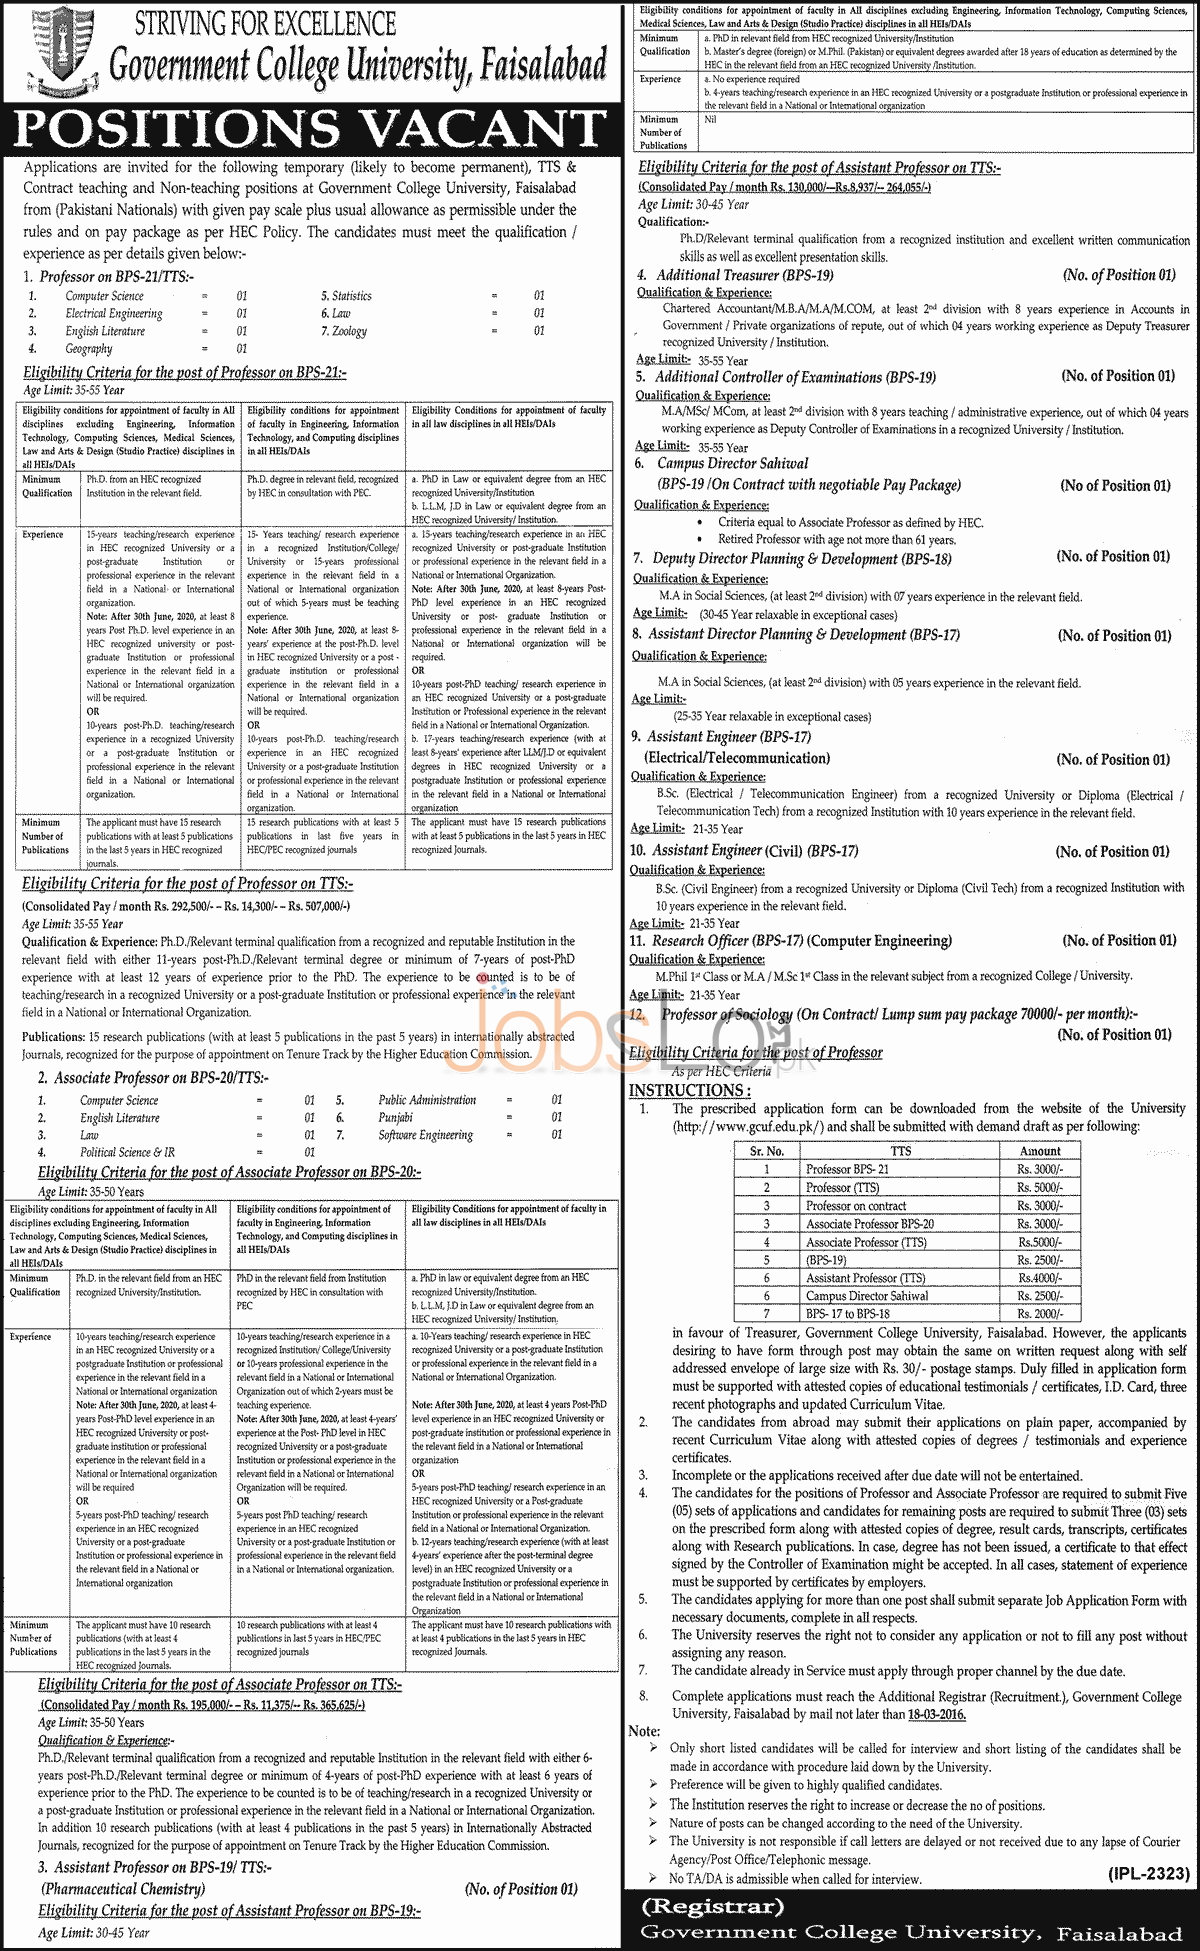 Situations Vacant in Govt College University 03 March 2016 Faisalabad Eligibility Criteria